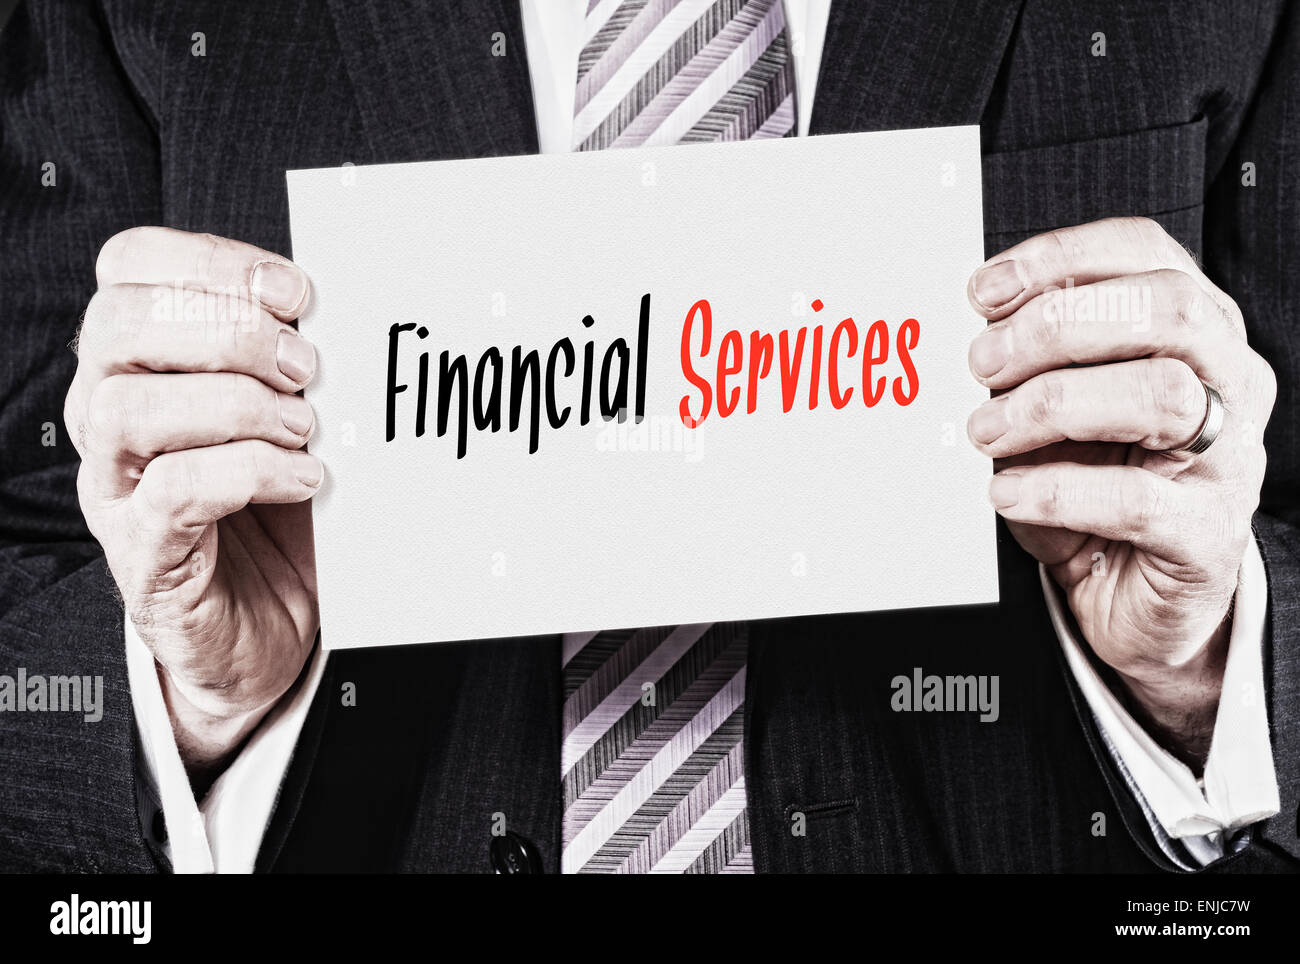 A businessman holding a business card with the words, Financial Services, written on it. - Stock Image